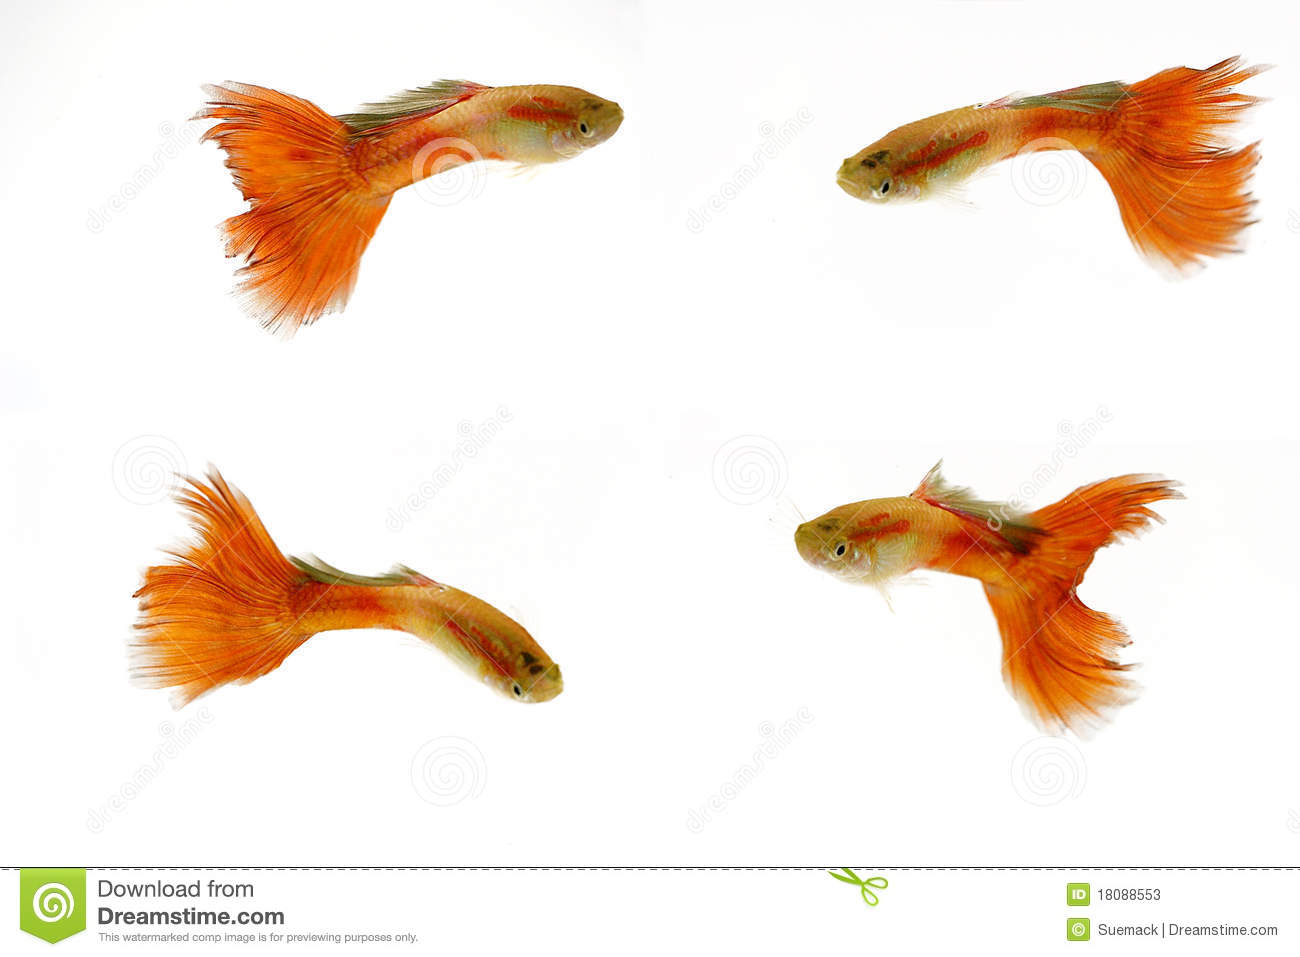 Poissons m les rouges de guppy photos stock image 18088553 for Alimentation guppy poisson rouge